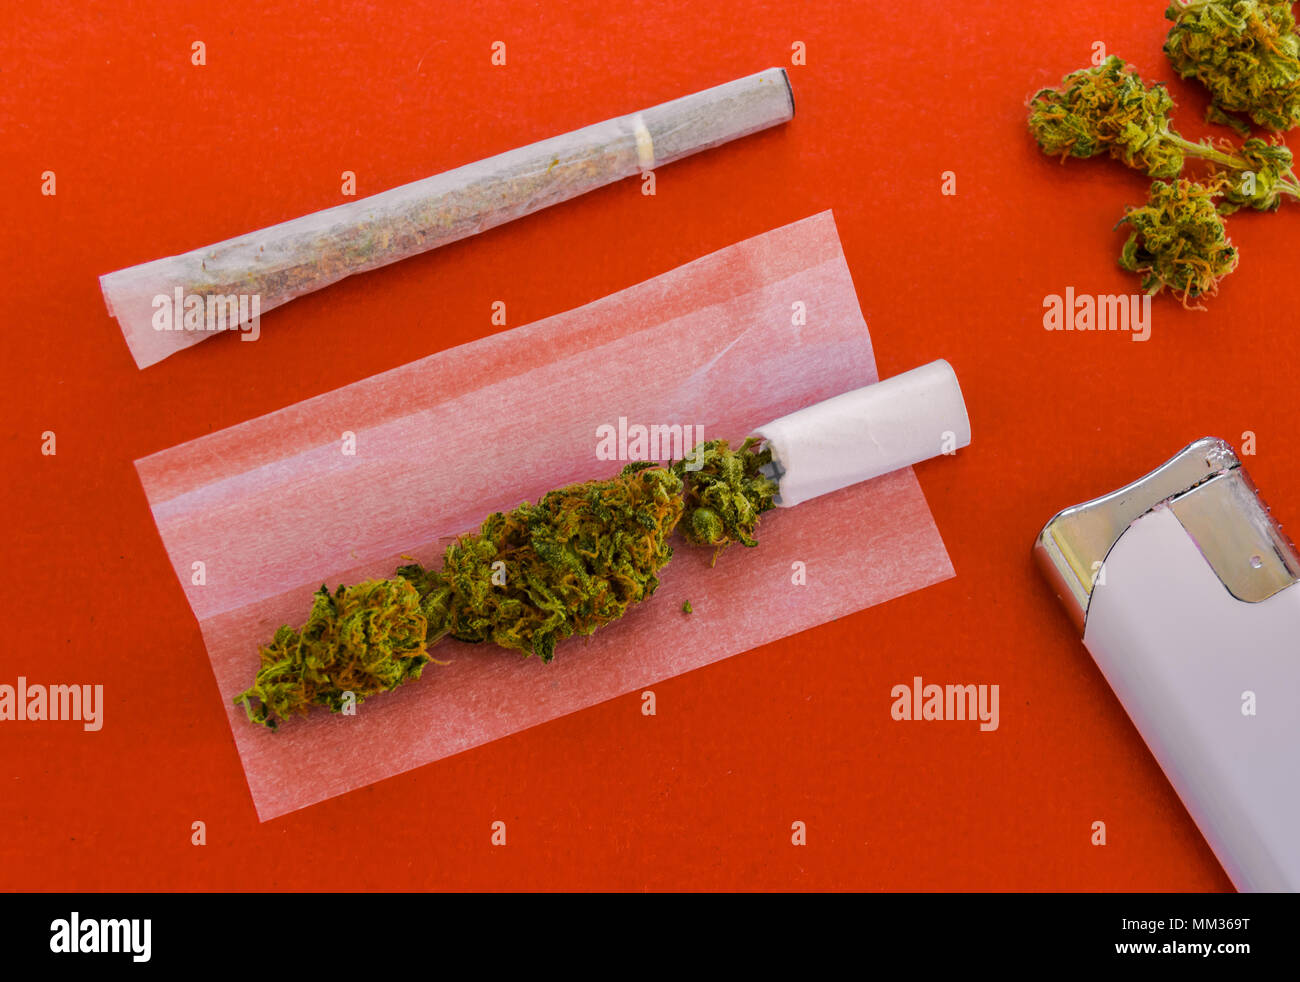 Rolling a joint of marijuana. Views of two joints, one prepared to roll, lighter and marijuana buds isolated on red background. - Stock Image